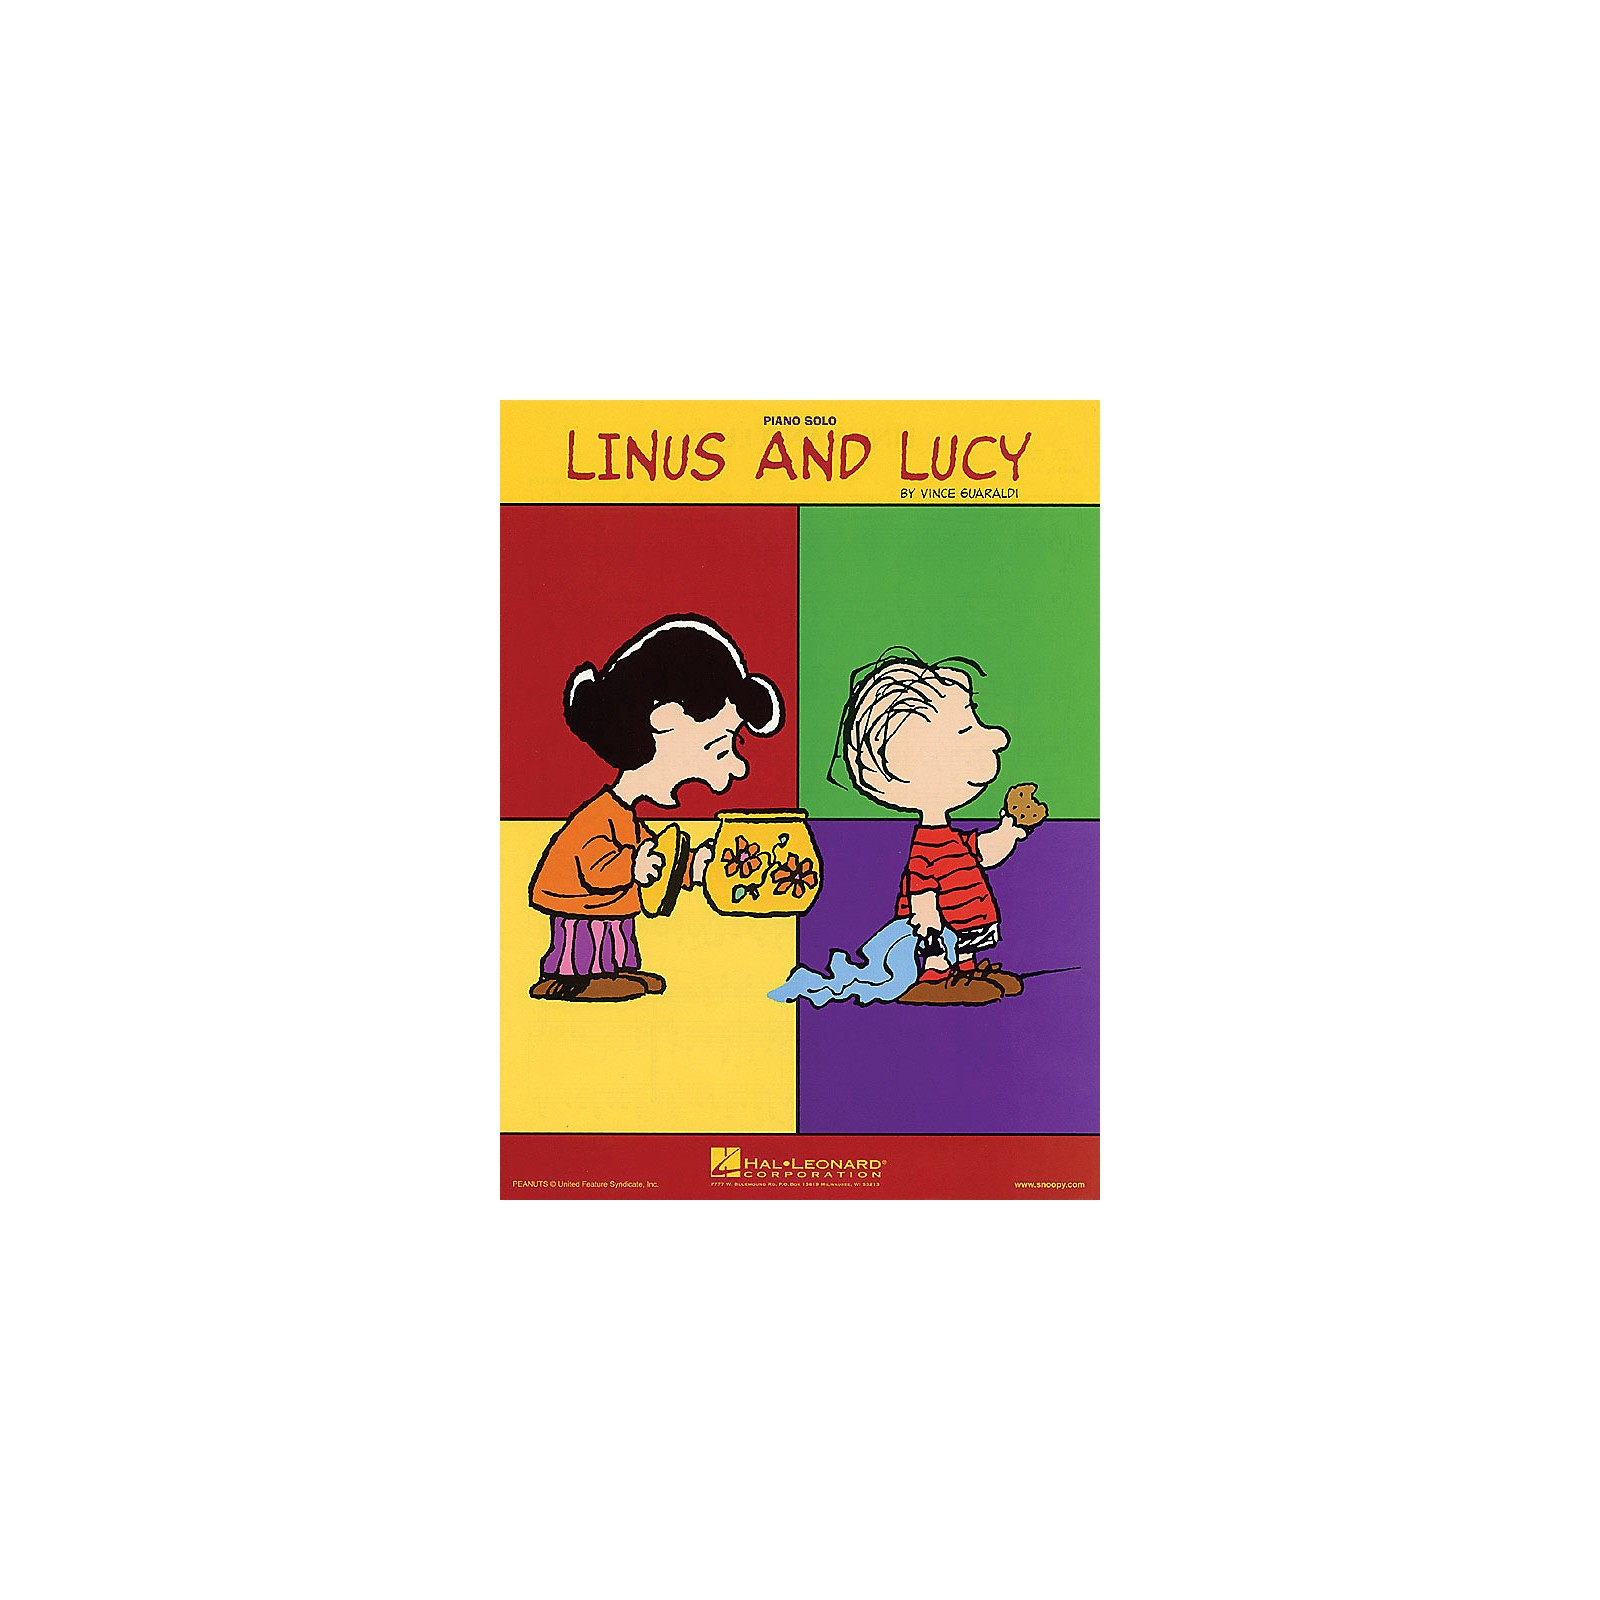 Hal Leonard Linus and Lucy arranged for Piano Solo